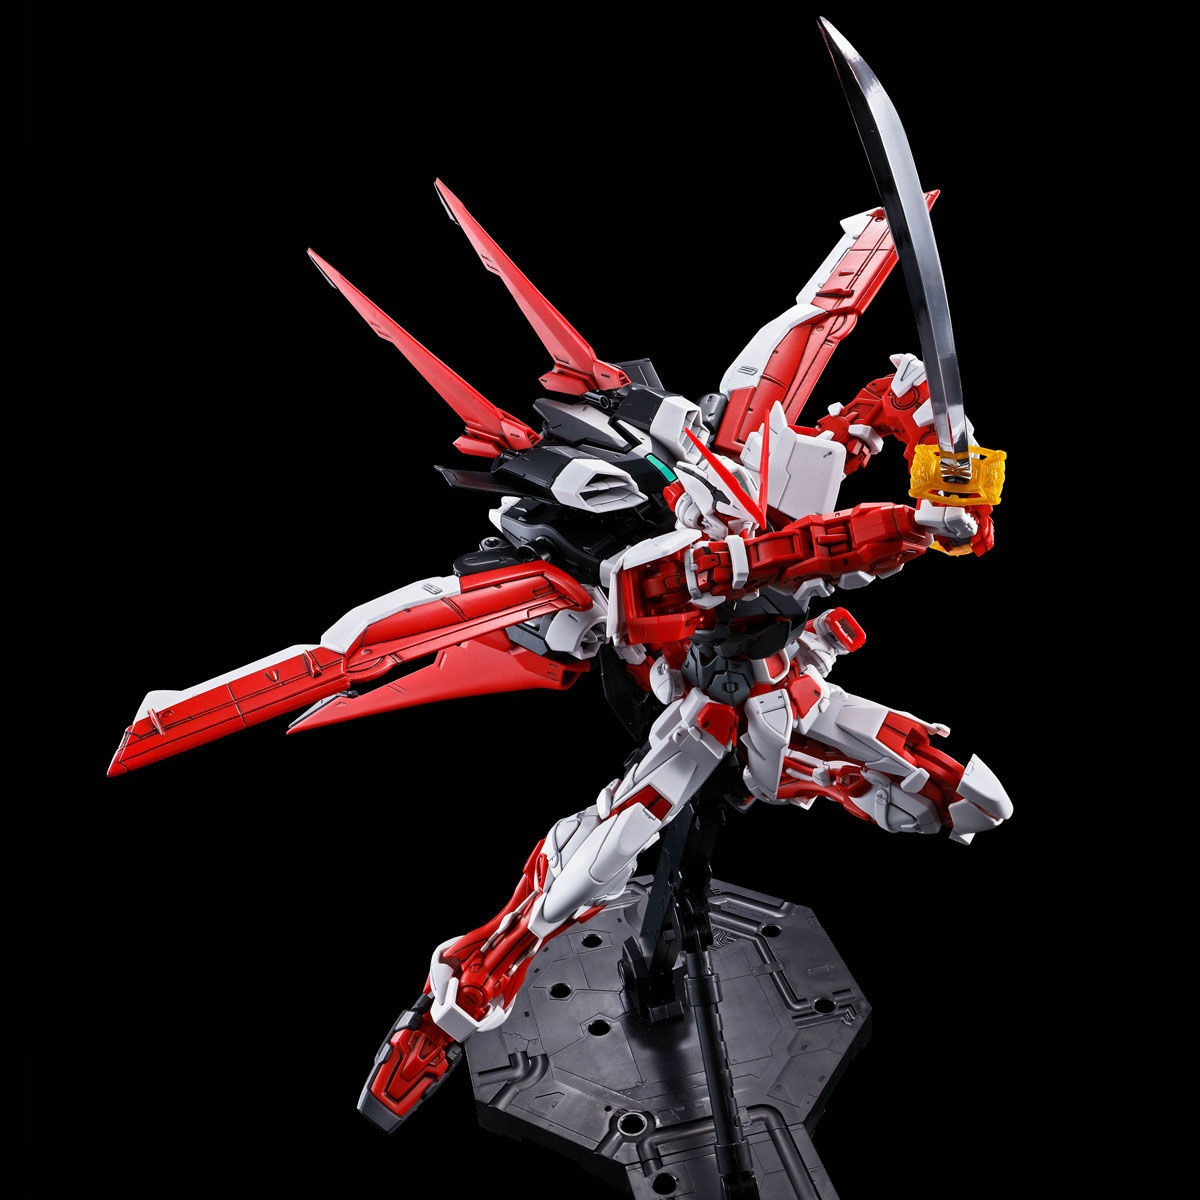 MG 1/100 FLIGHT UNIT EXPANSION SET for GUNDAM ASTRAY RED FRAME [Sep 2020 Delivery]